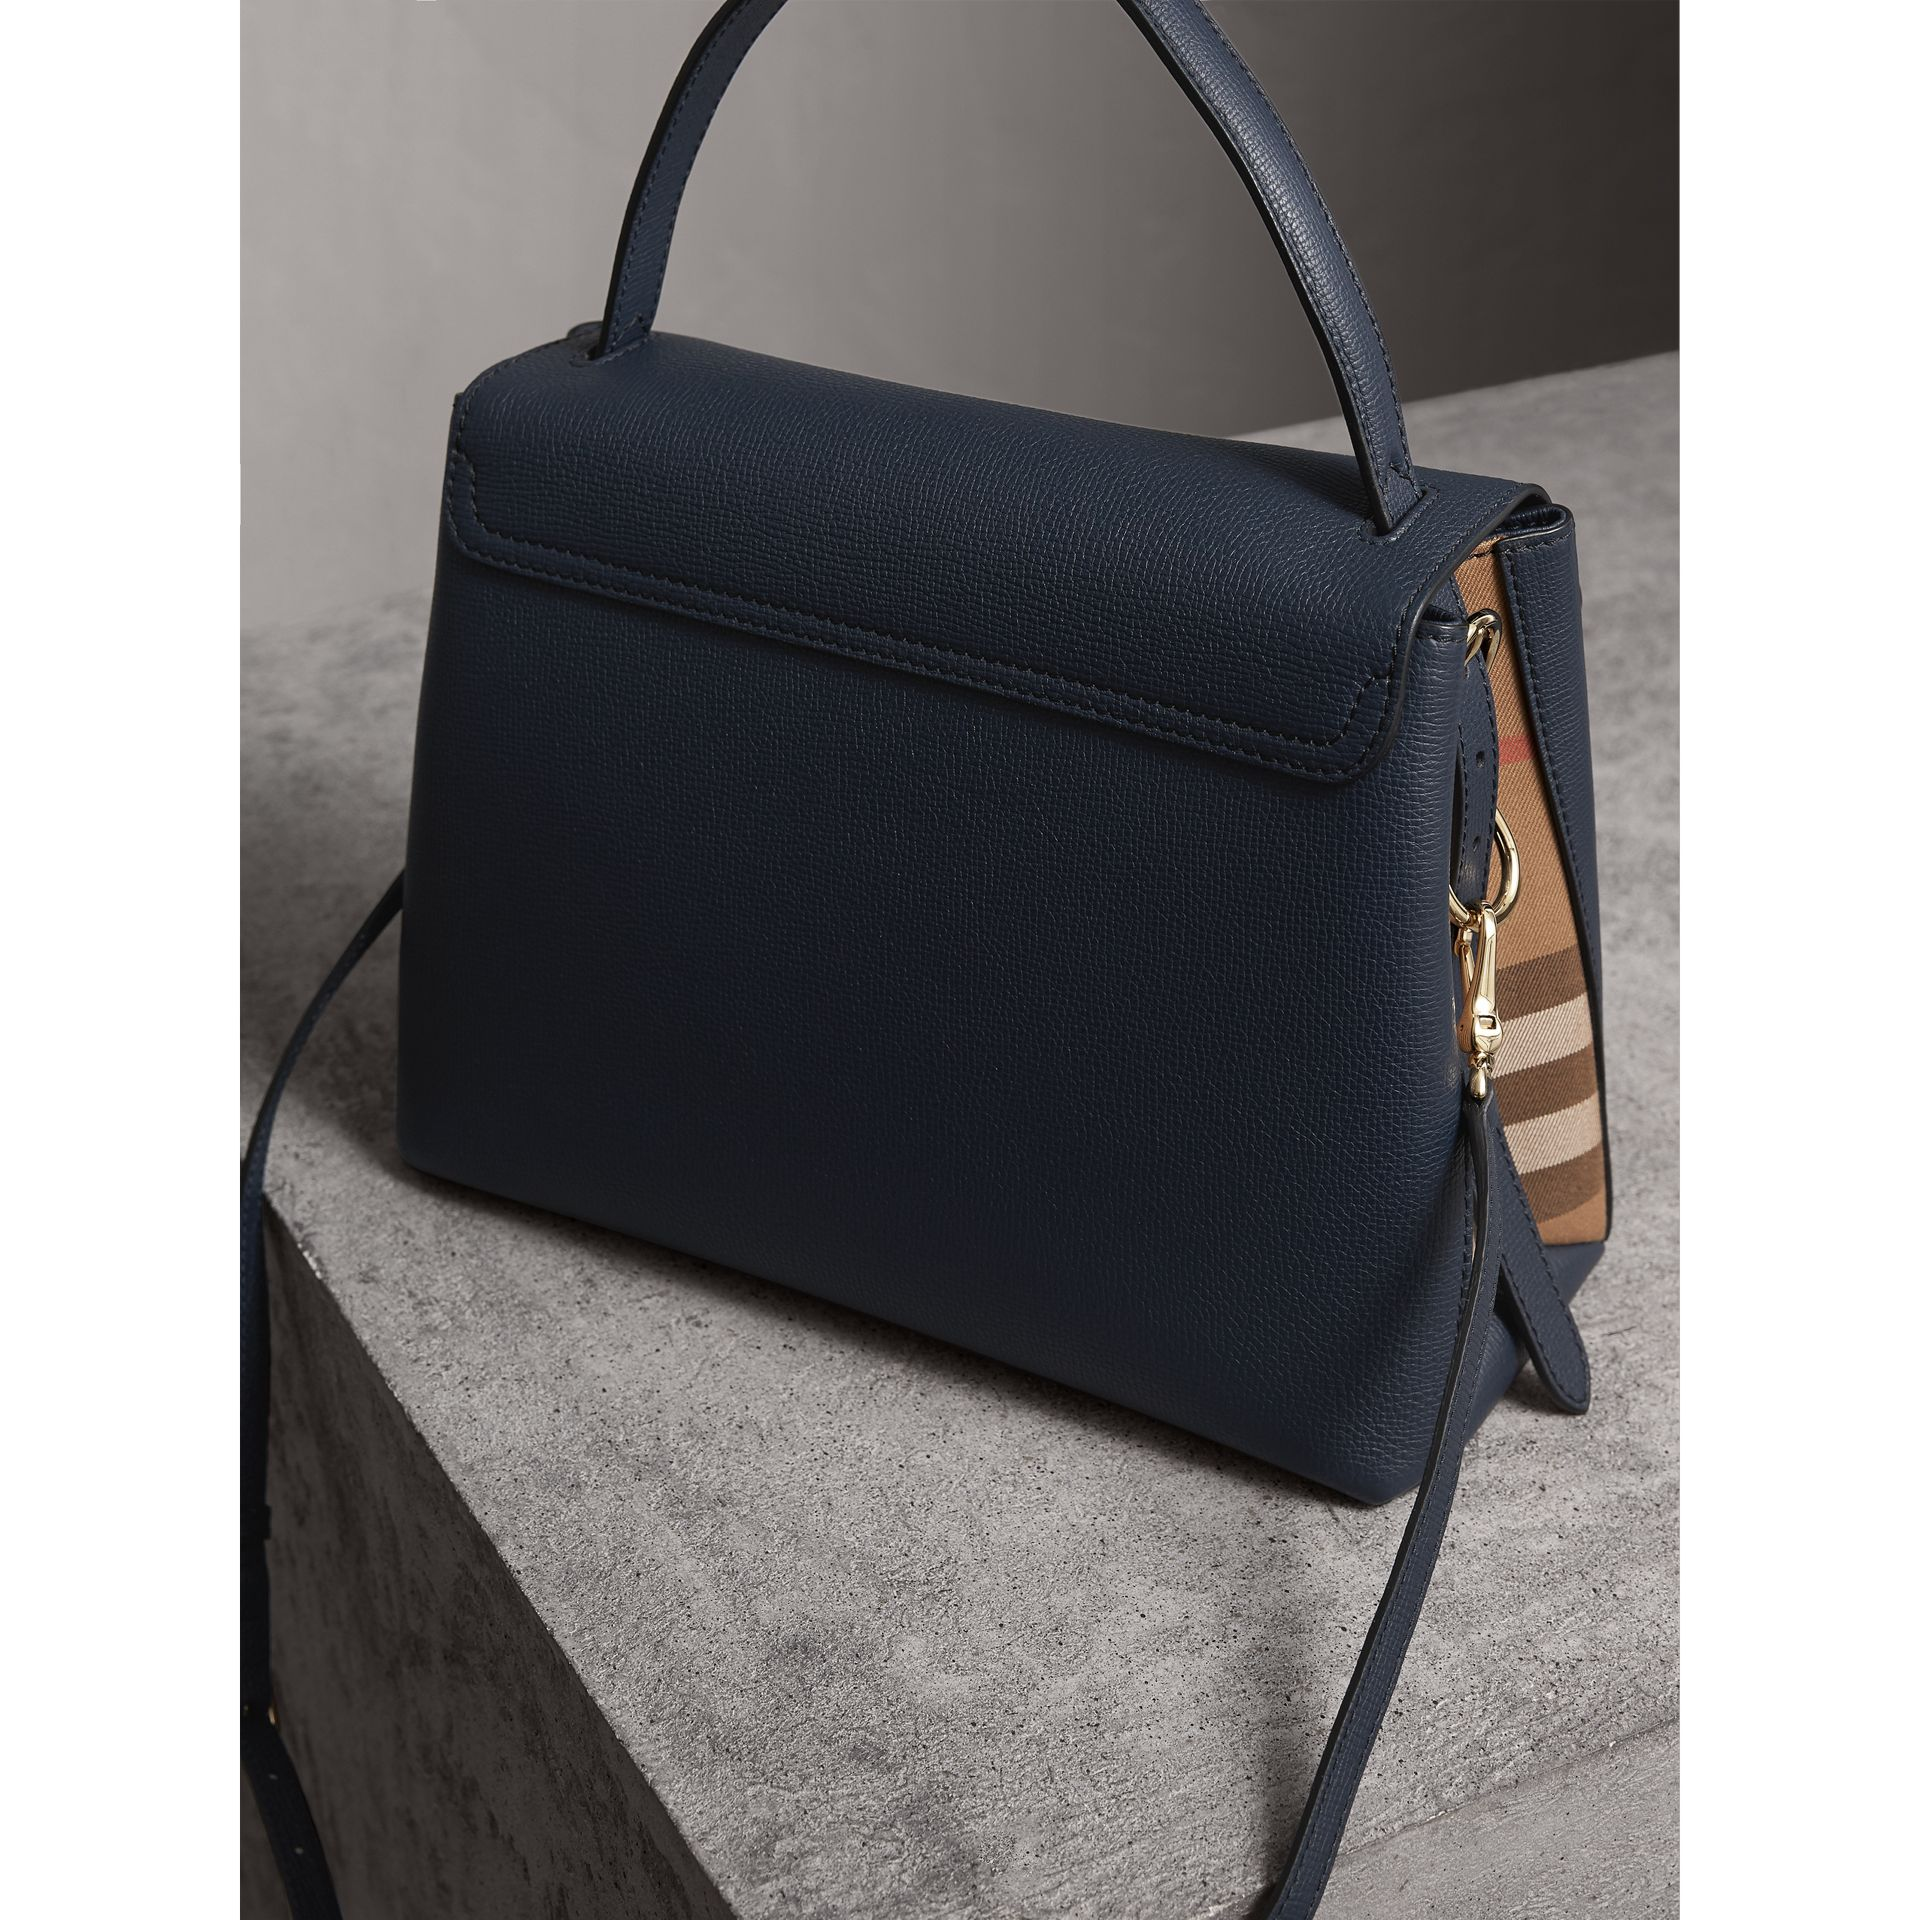 Medium Grainy Leather and House Check Tote Bag in Ink Blue - Women | Burberry - gallery image 4